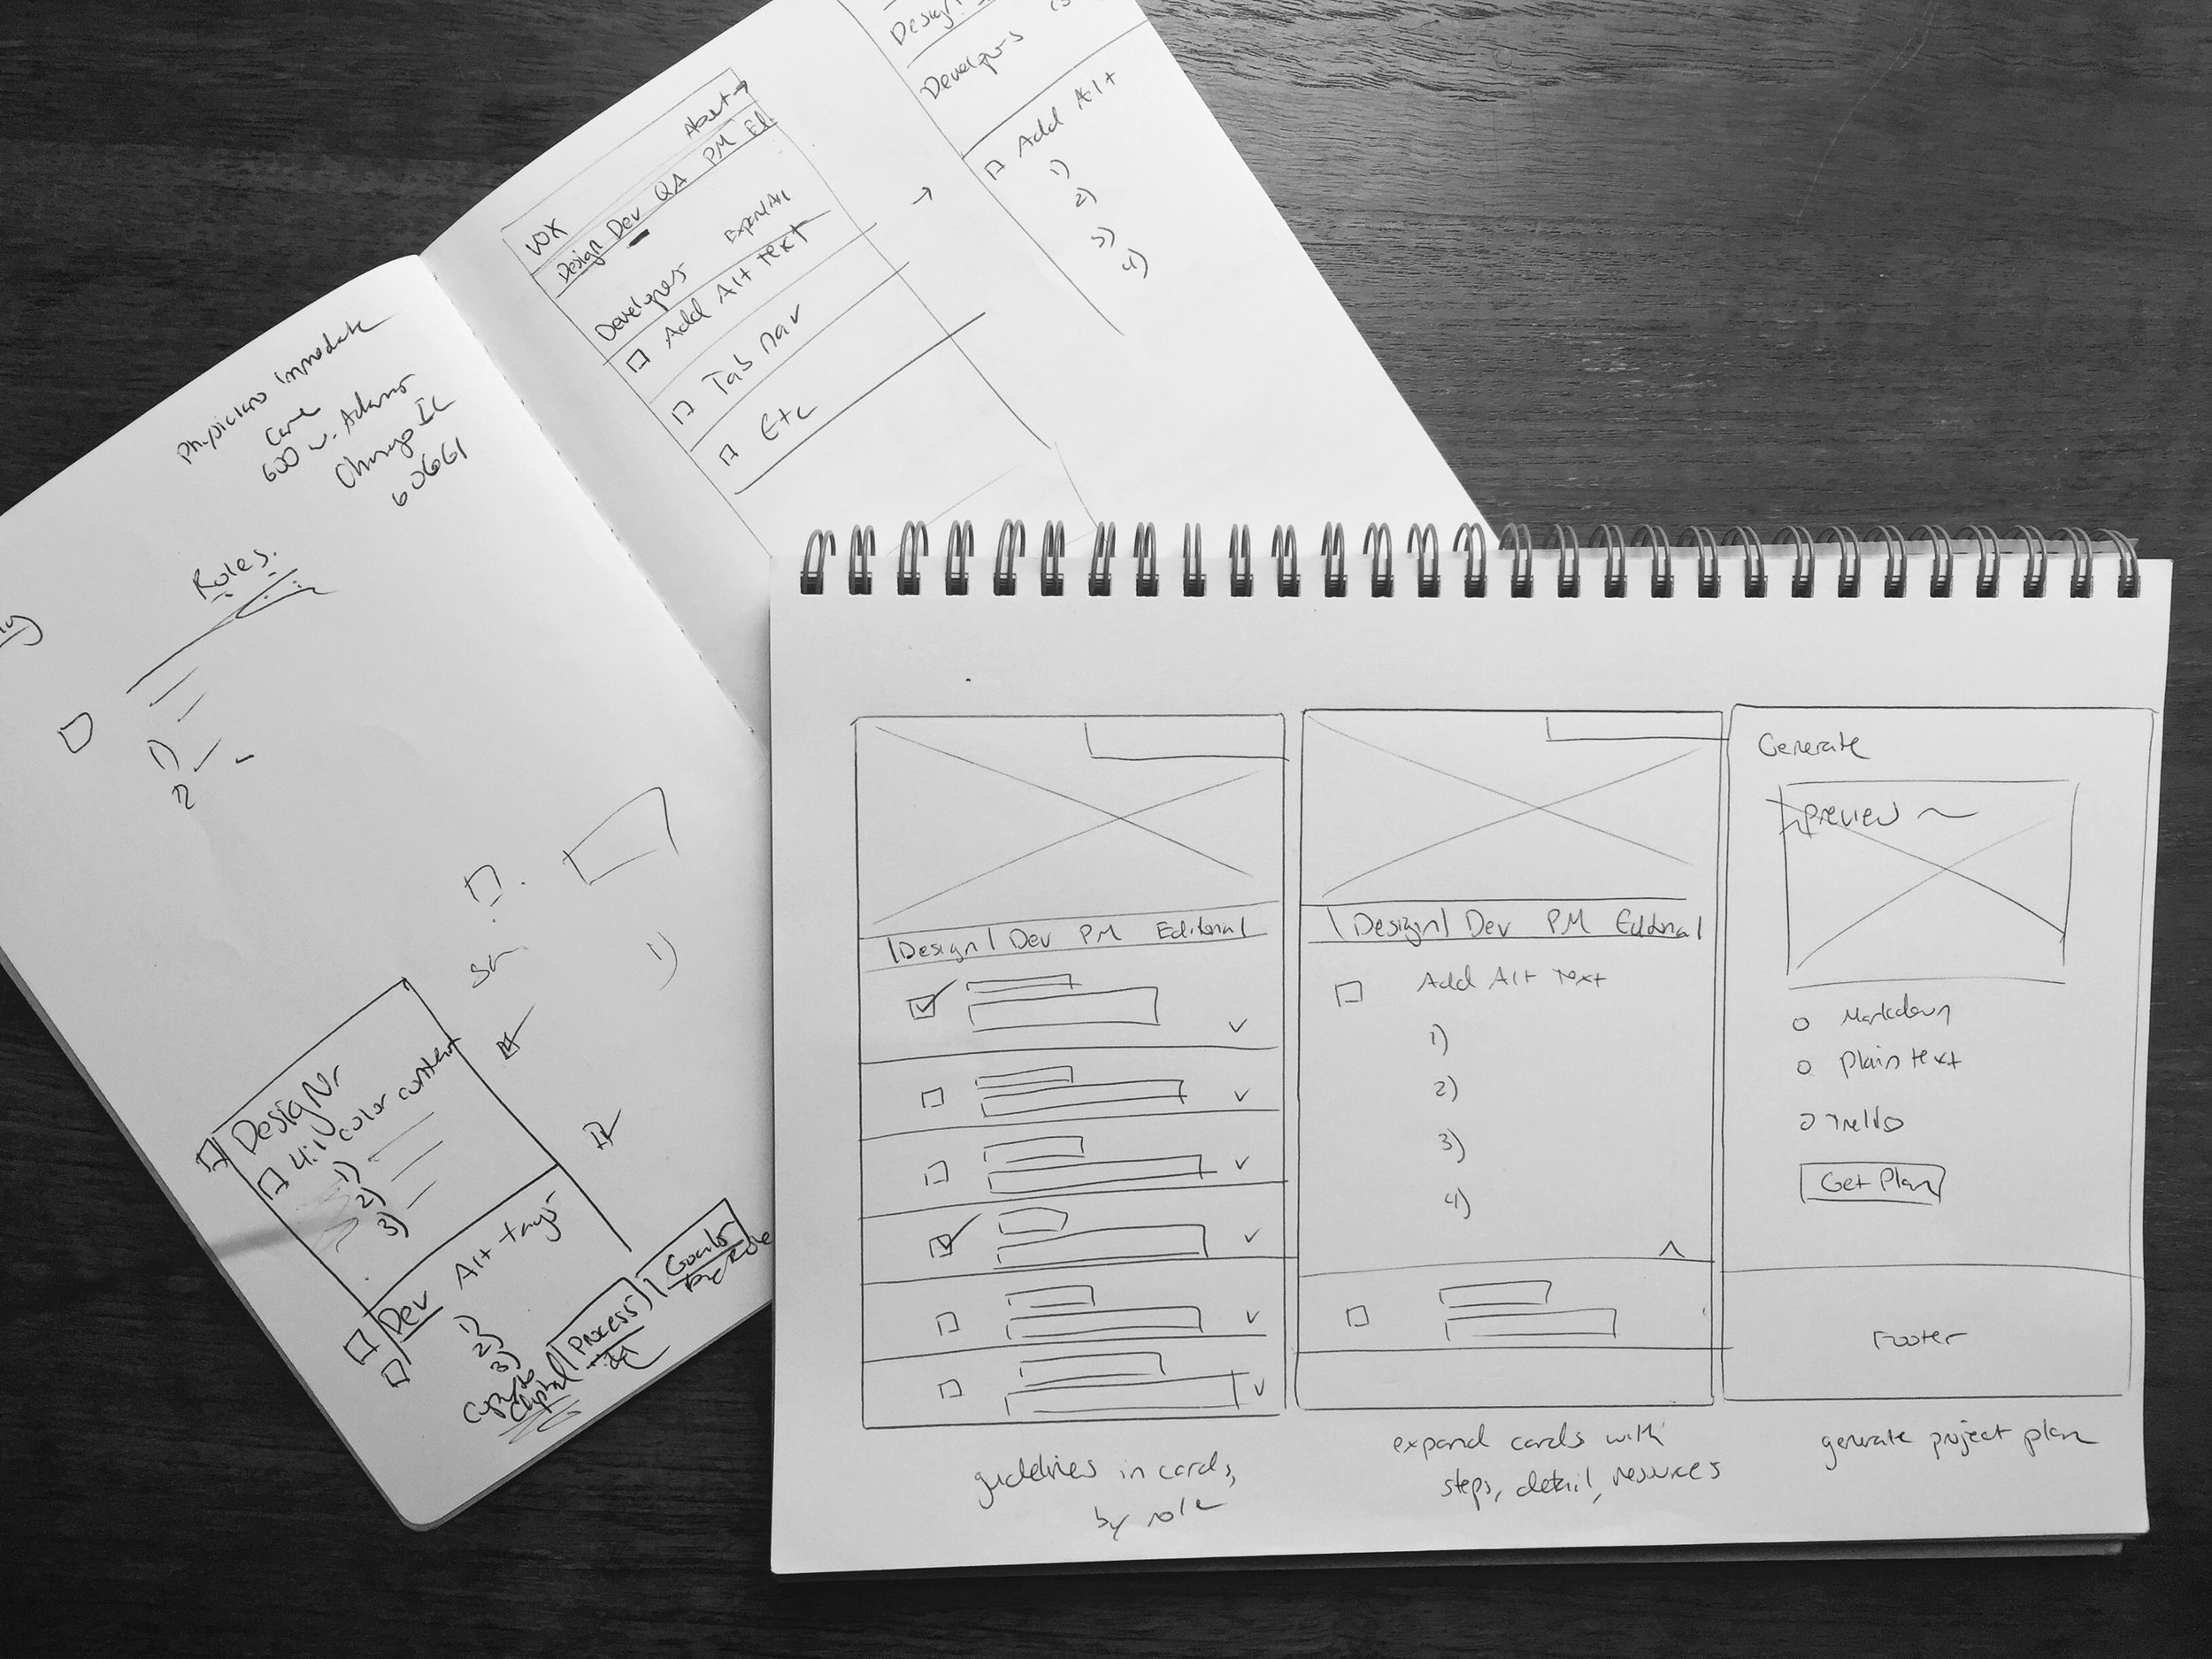 Initial checklist tool sketches